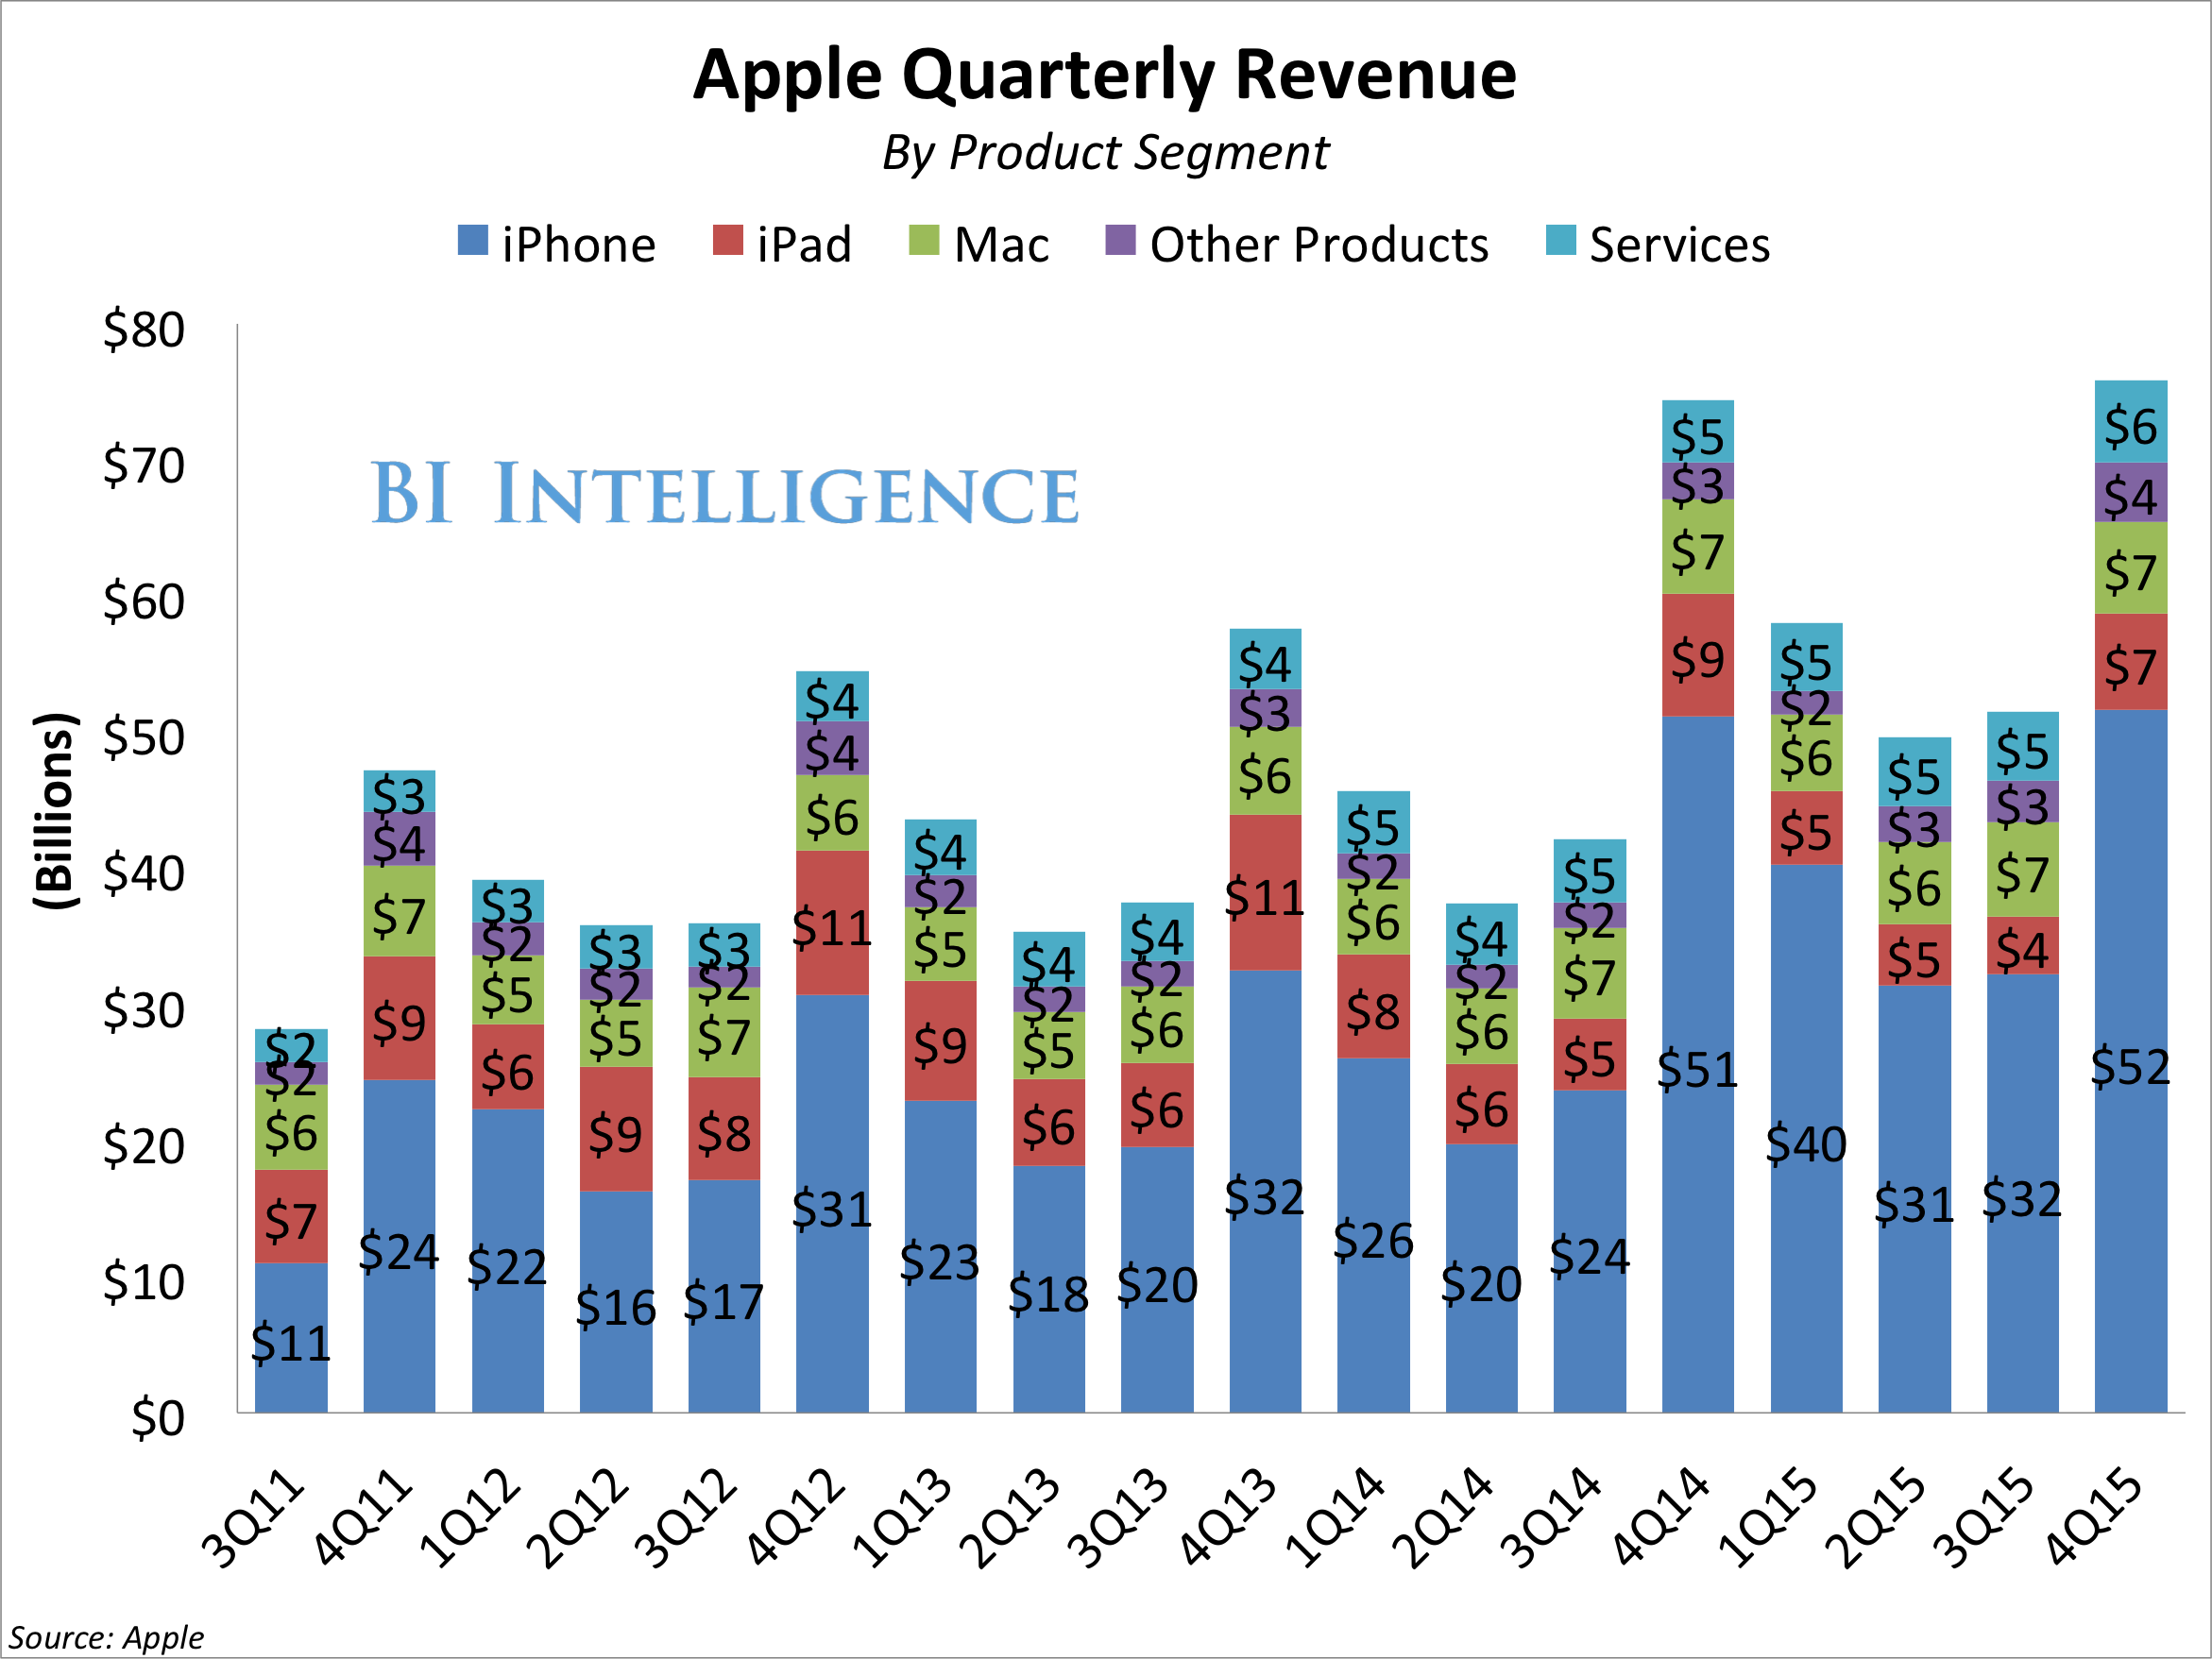 bii apple revenue by product stacked 4Q15